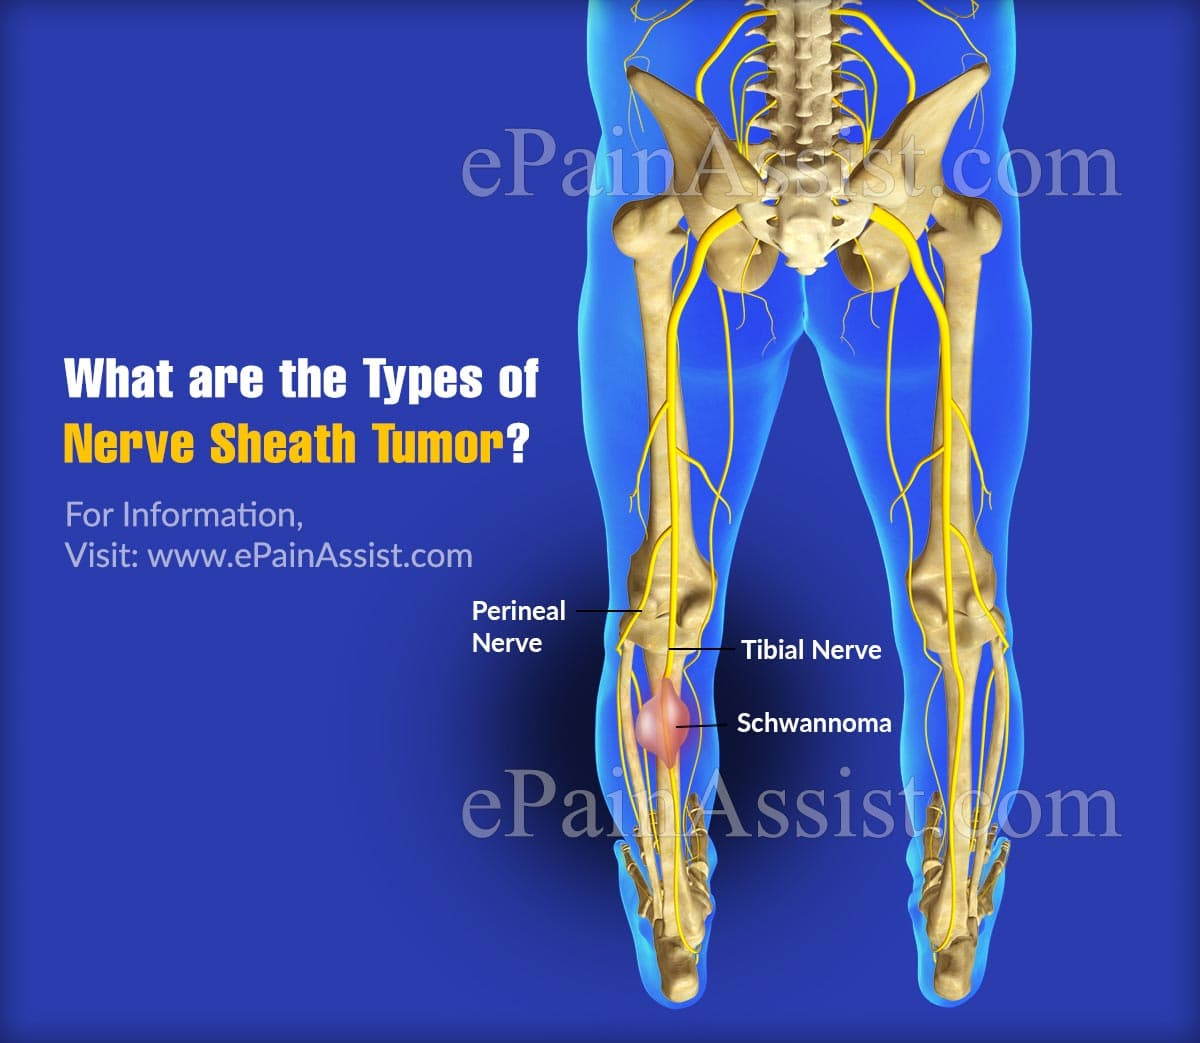 What Are The Types Of Nerve Sheath Tumor?